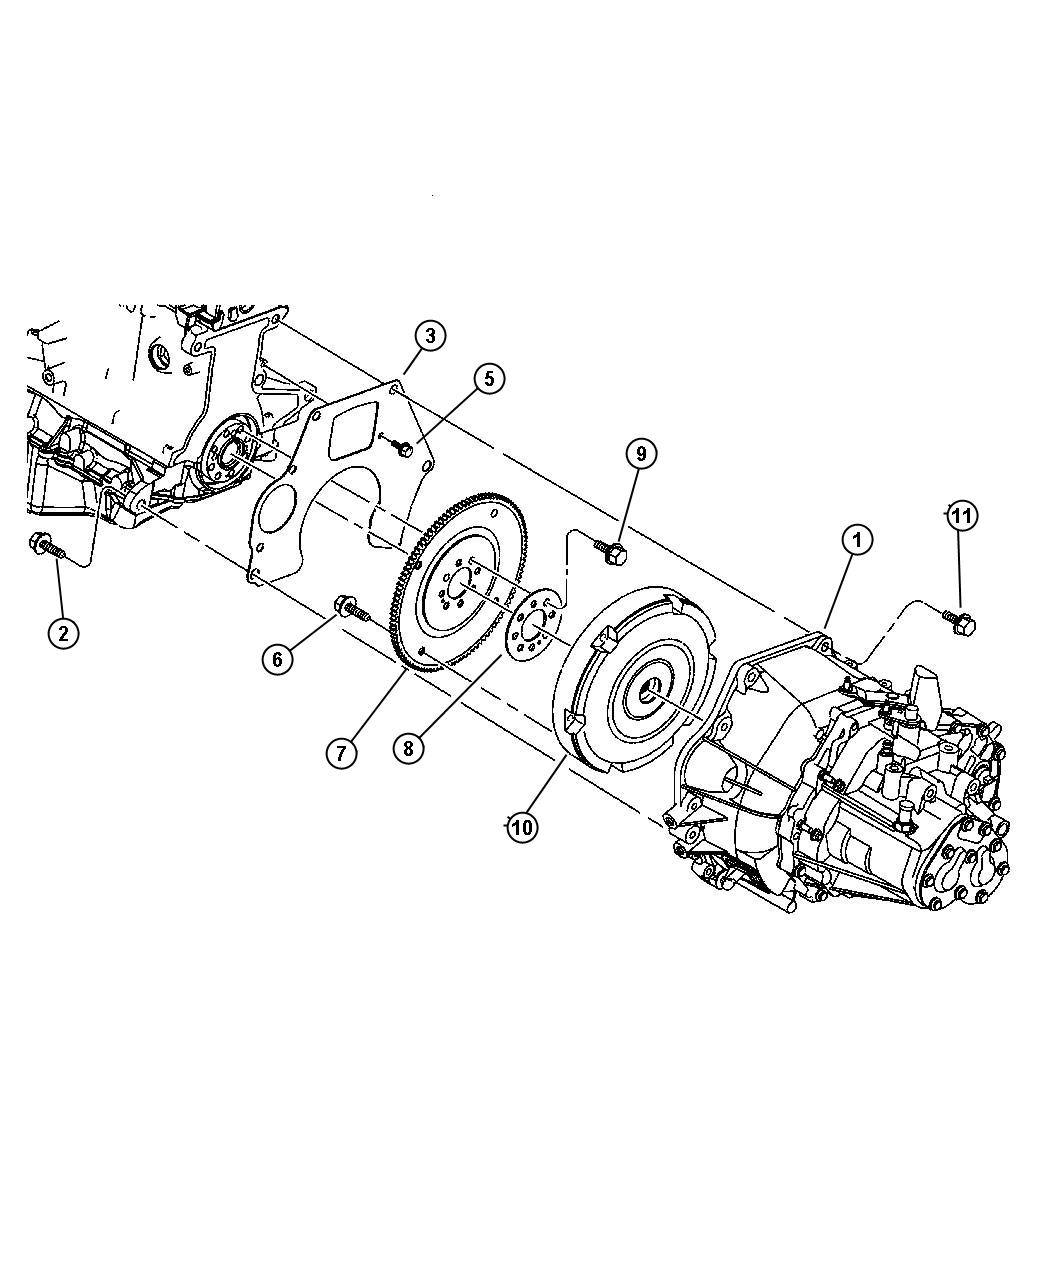 Dodge Neon Transaxle. With stamp # [05273250ac